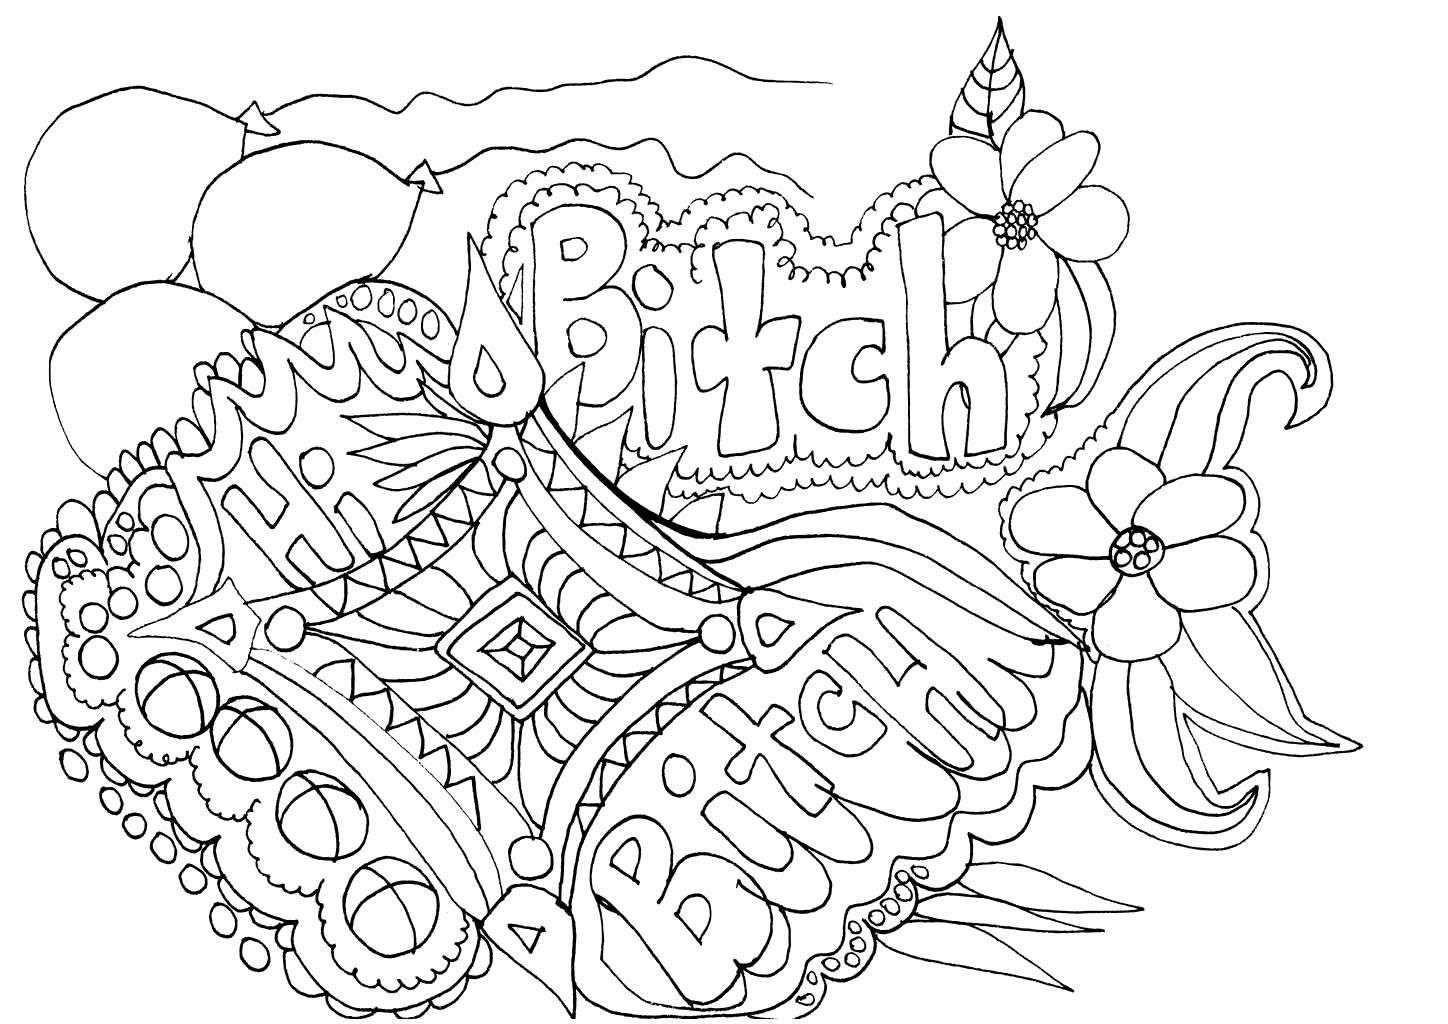 Free Cuss Word Btich Coloring Pages printable